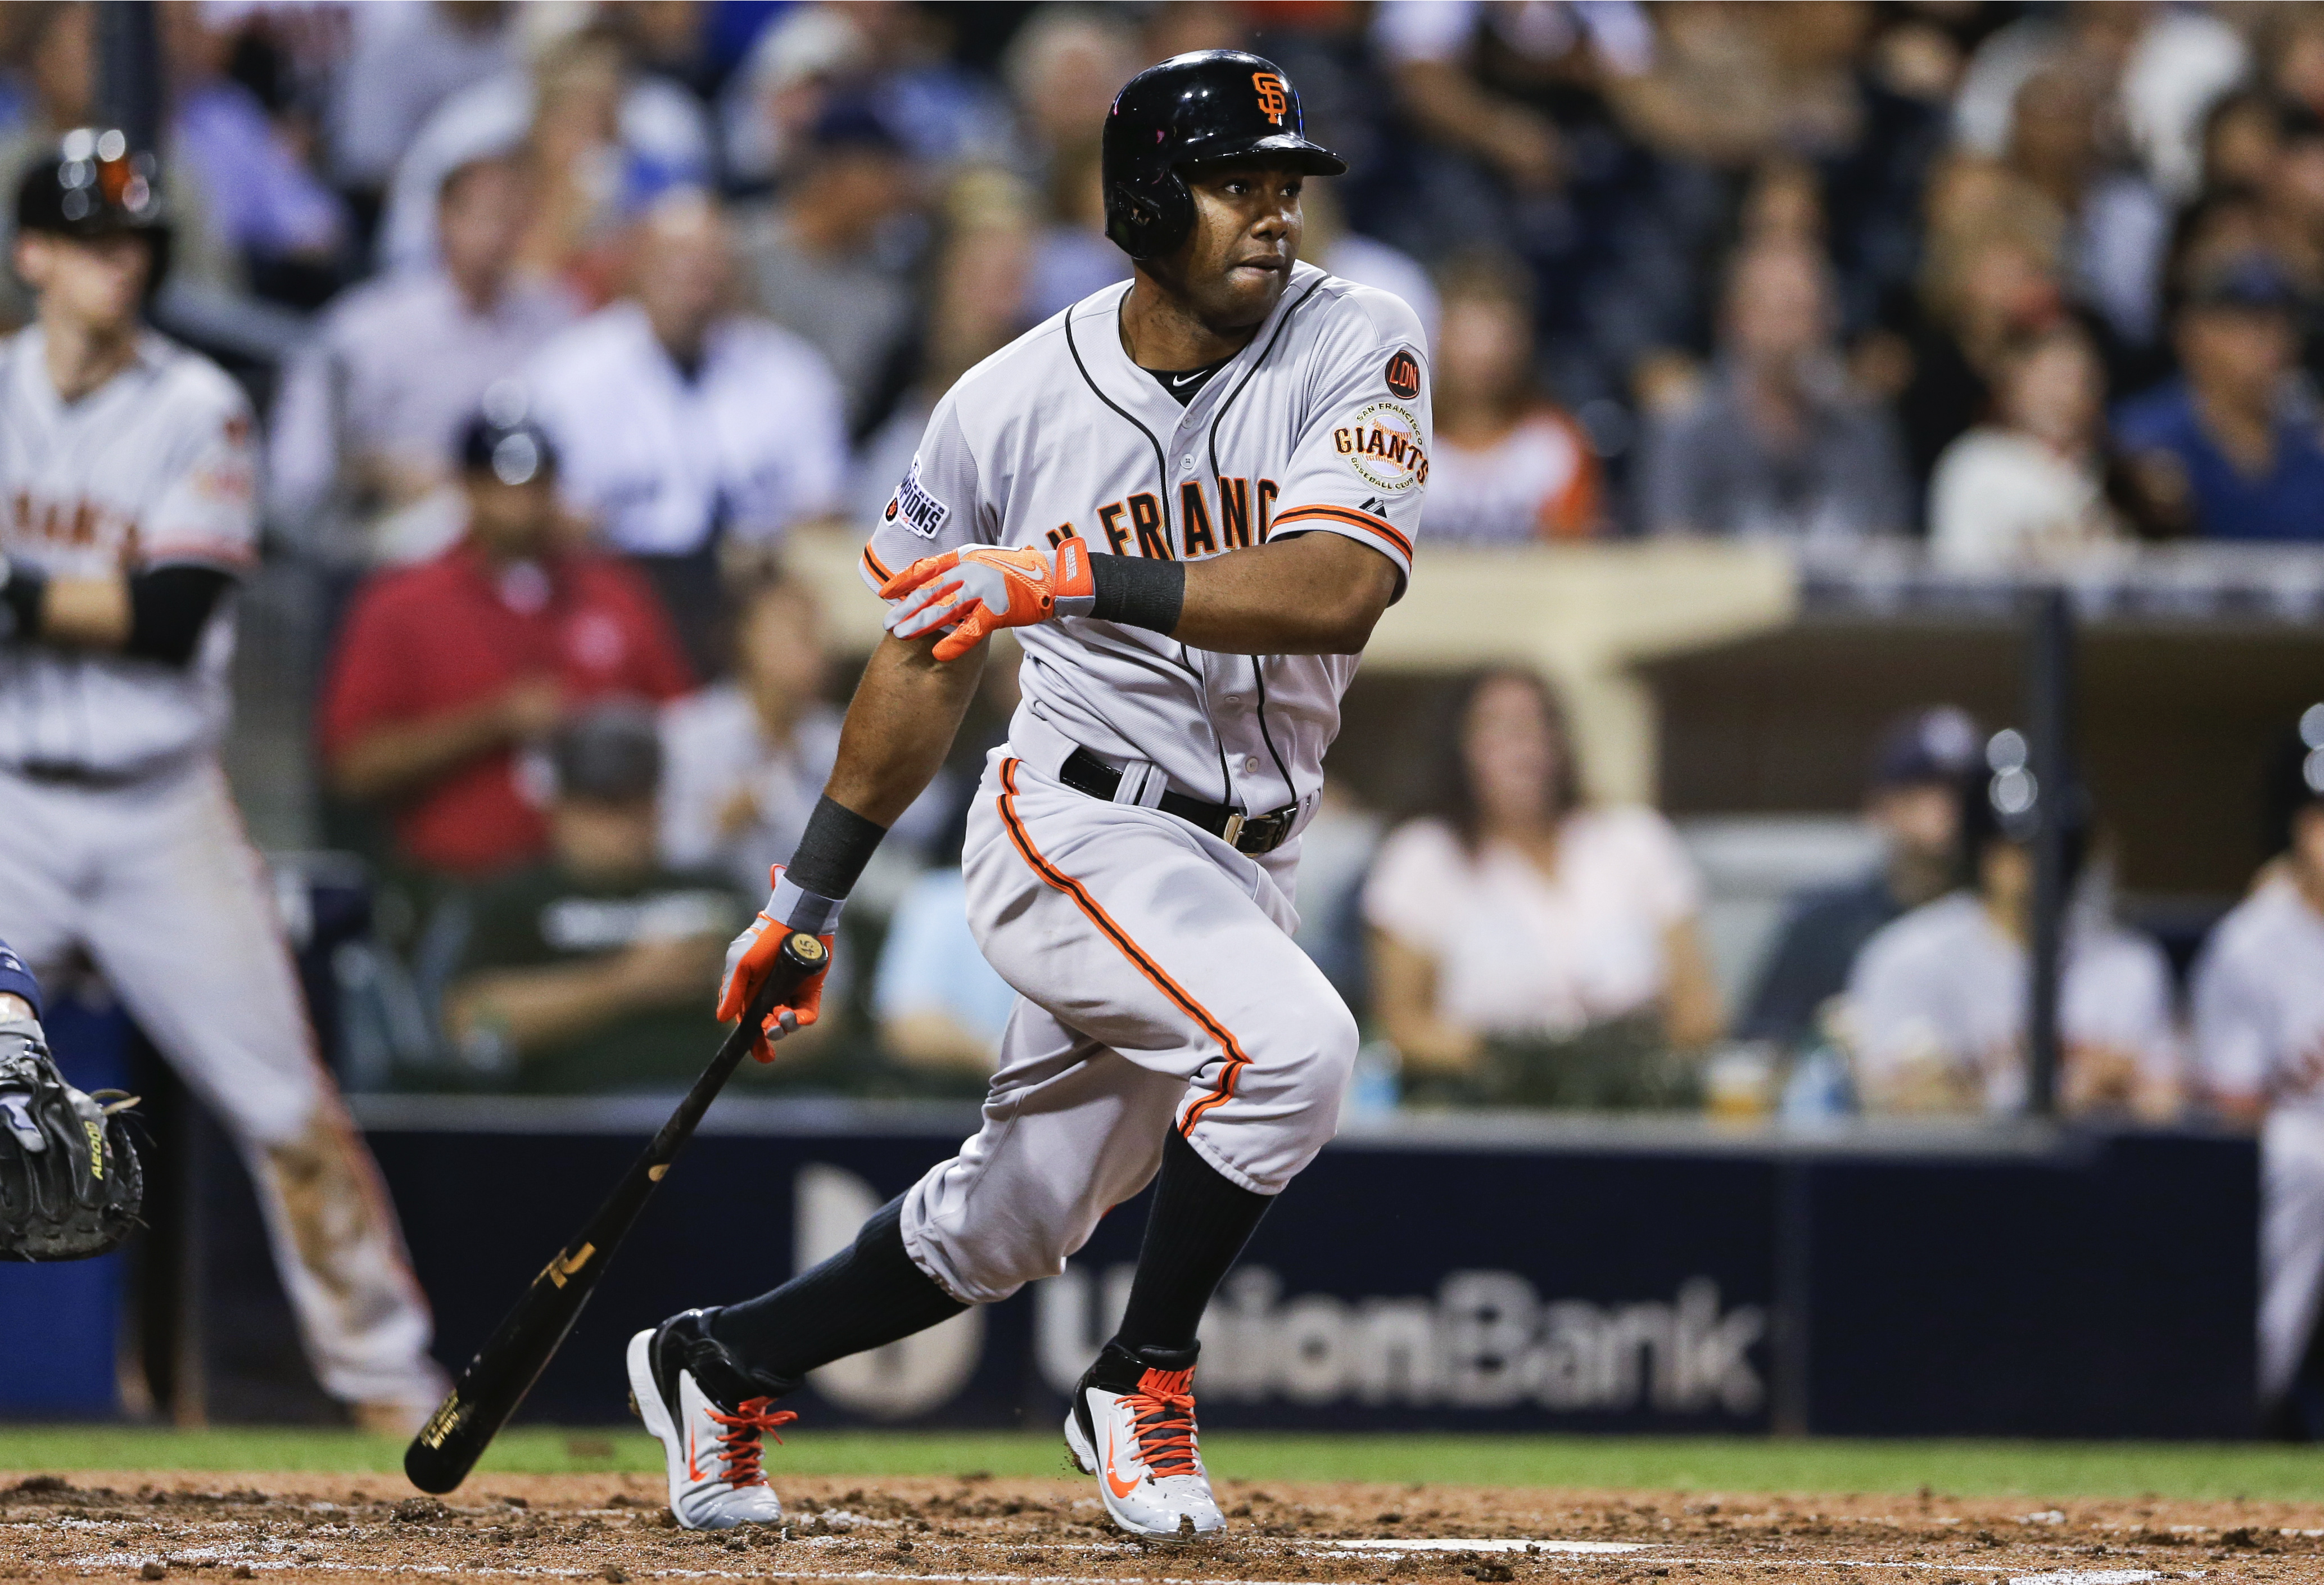 FILE - In this Sept. 24, 2015, file photo, San Francisco Giants' Alejandro De Aza watches his RBI single against the San Diego Padres during the third inning of a baseball game in San Diego. A person familiar with the negotiations says outfielder Alejandr